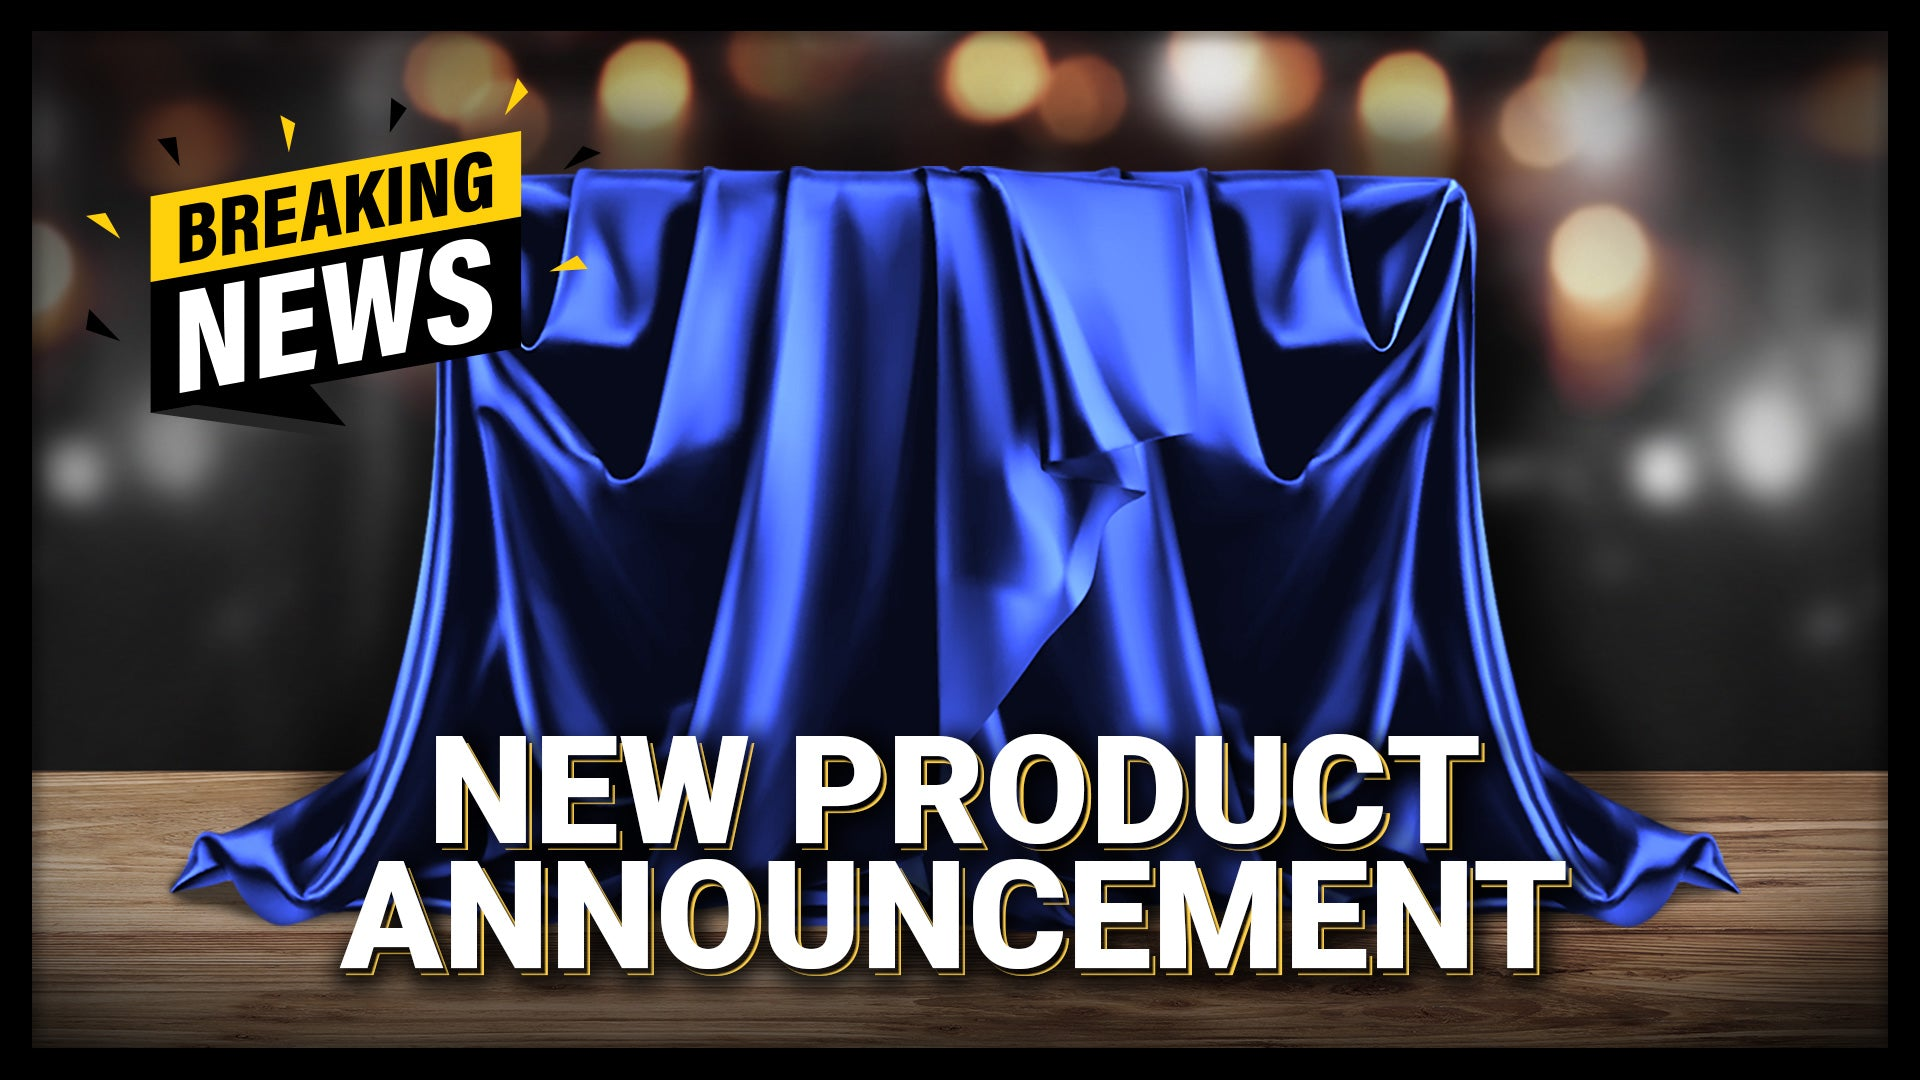 New Product Announcement!